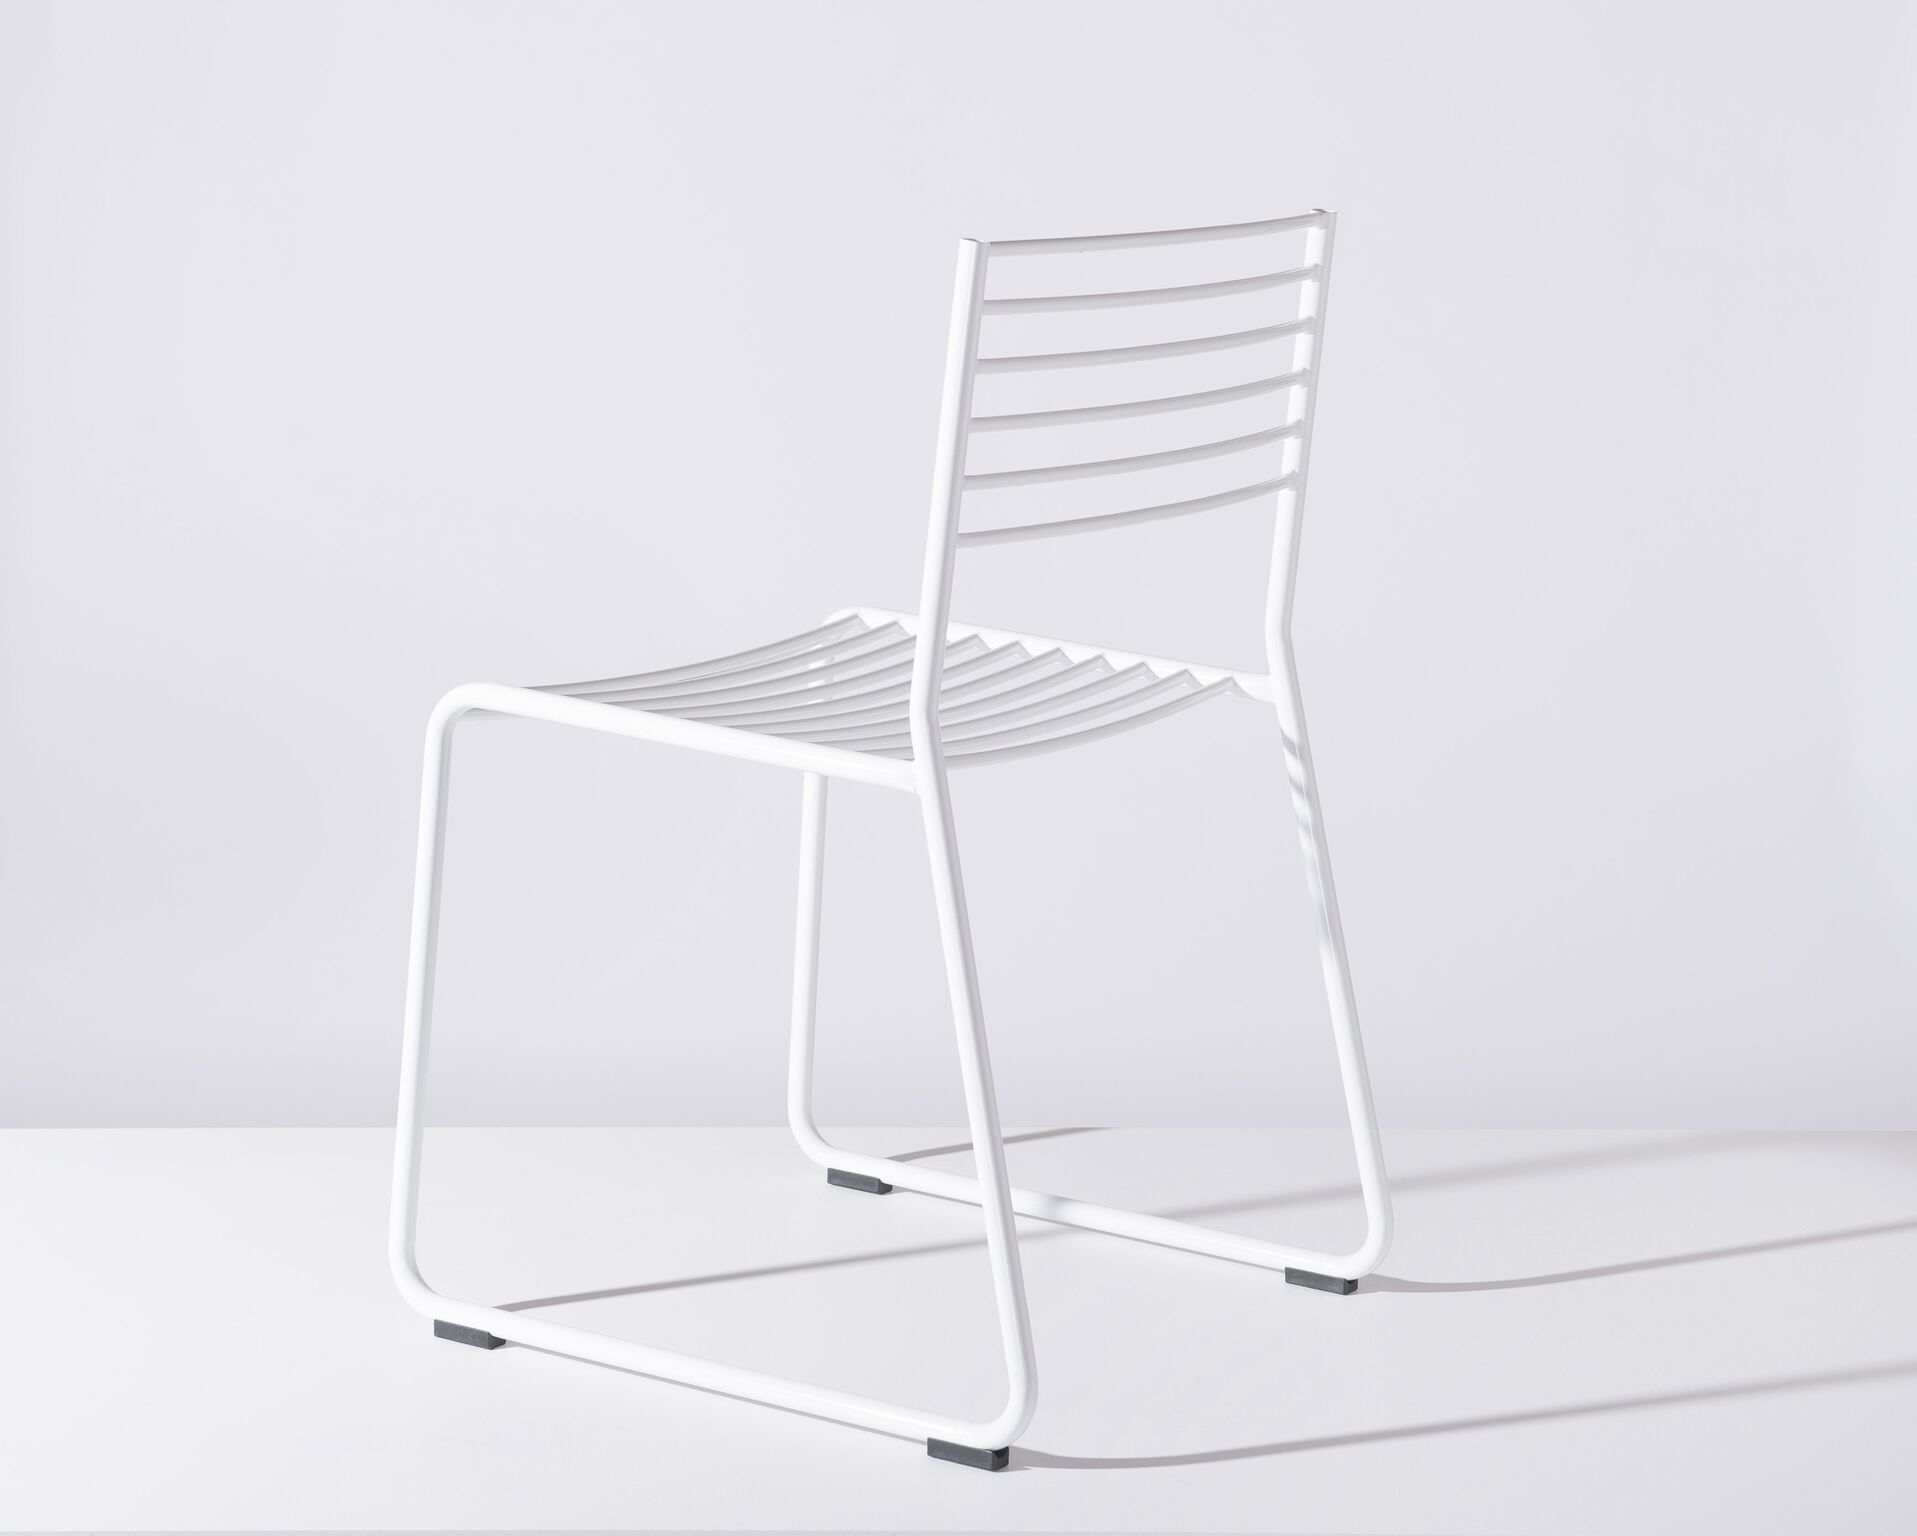 Gallery Of Tbc Wire Chair By Studio Of Adam Lynch Local Australian Furniture Design Preston, Melbourne Image 3